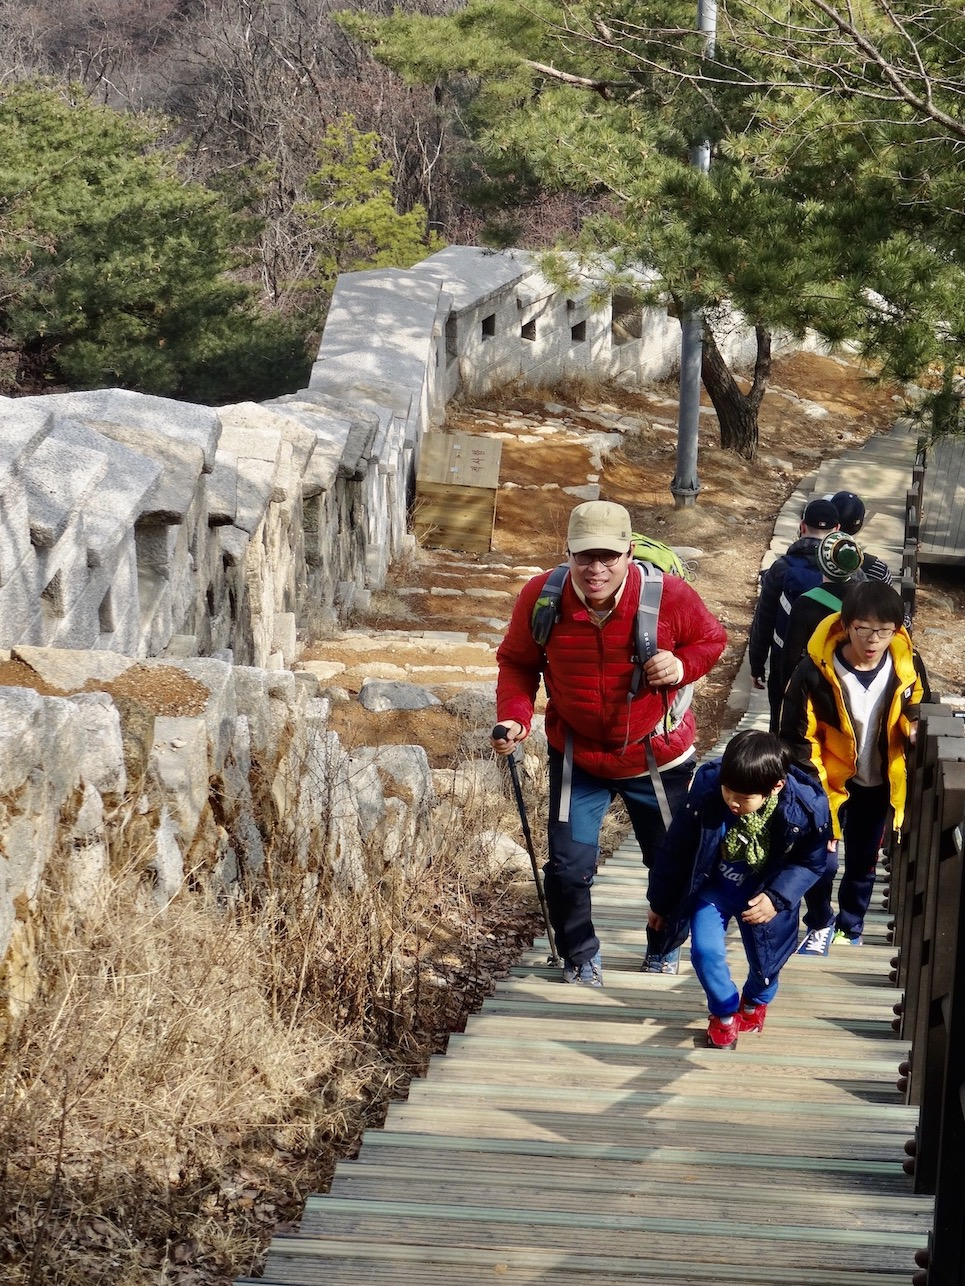 Hikers Ingwansan Mountain.